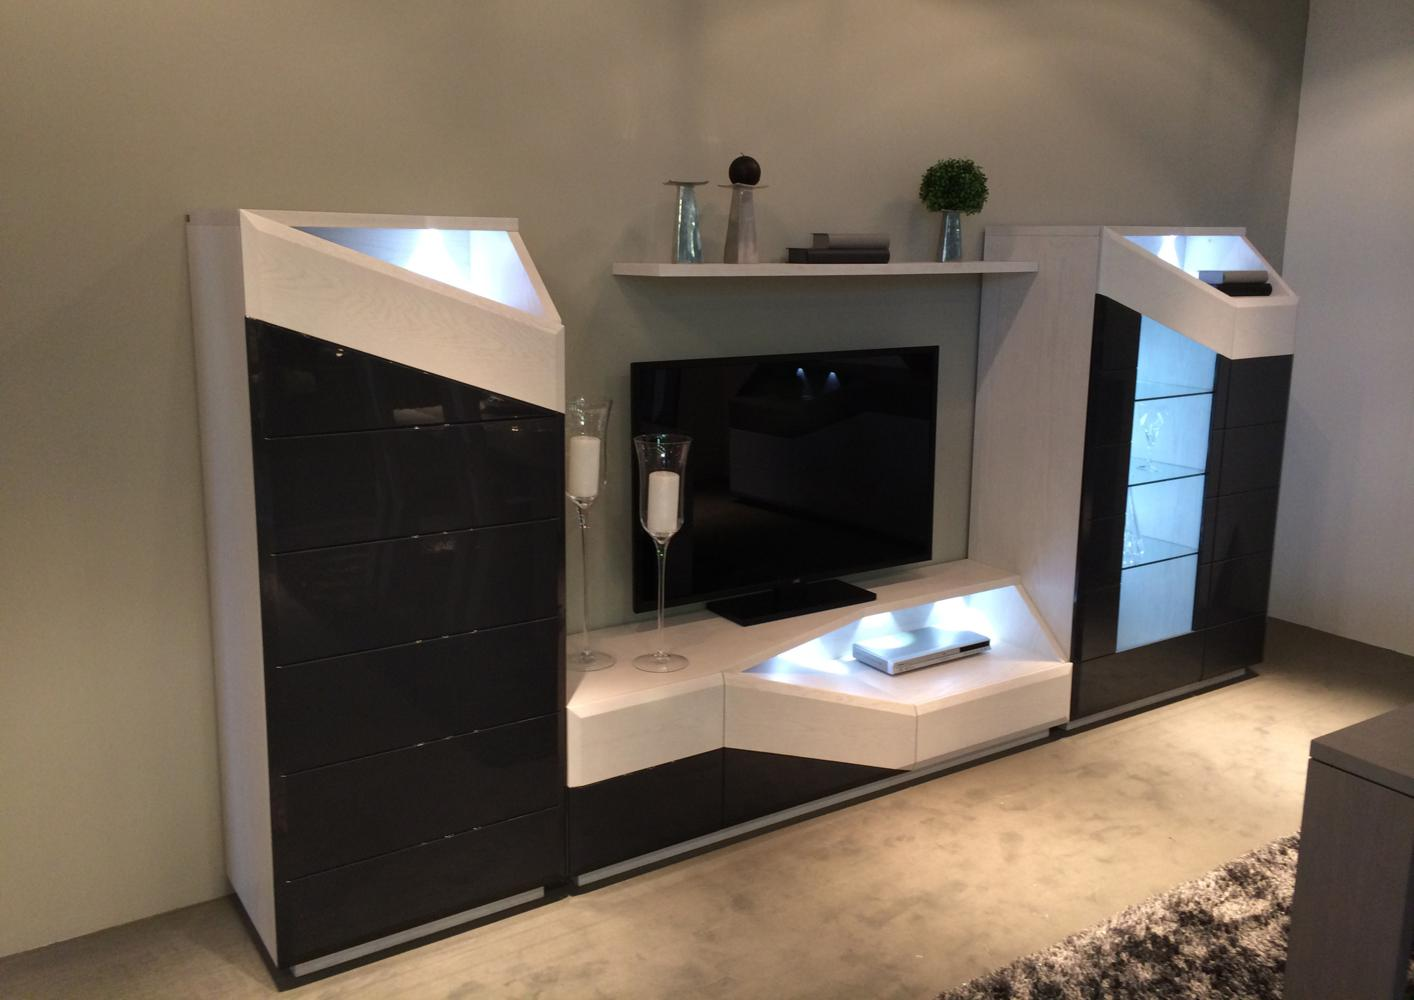 acheter votre meuble tv contemporain avec led chene laque. Black Bedroom Furniture Sets. Home Design Ideas